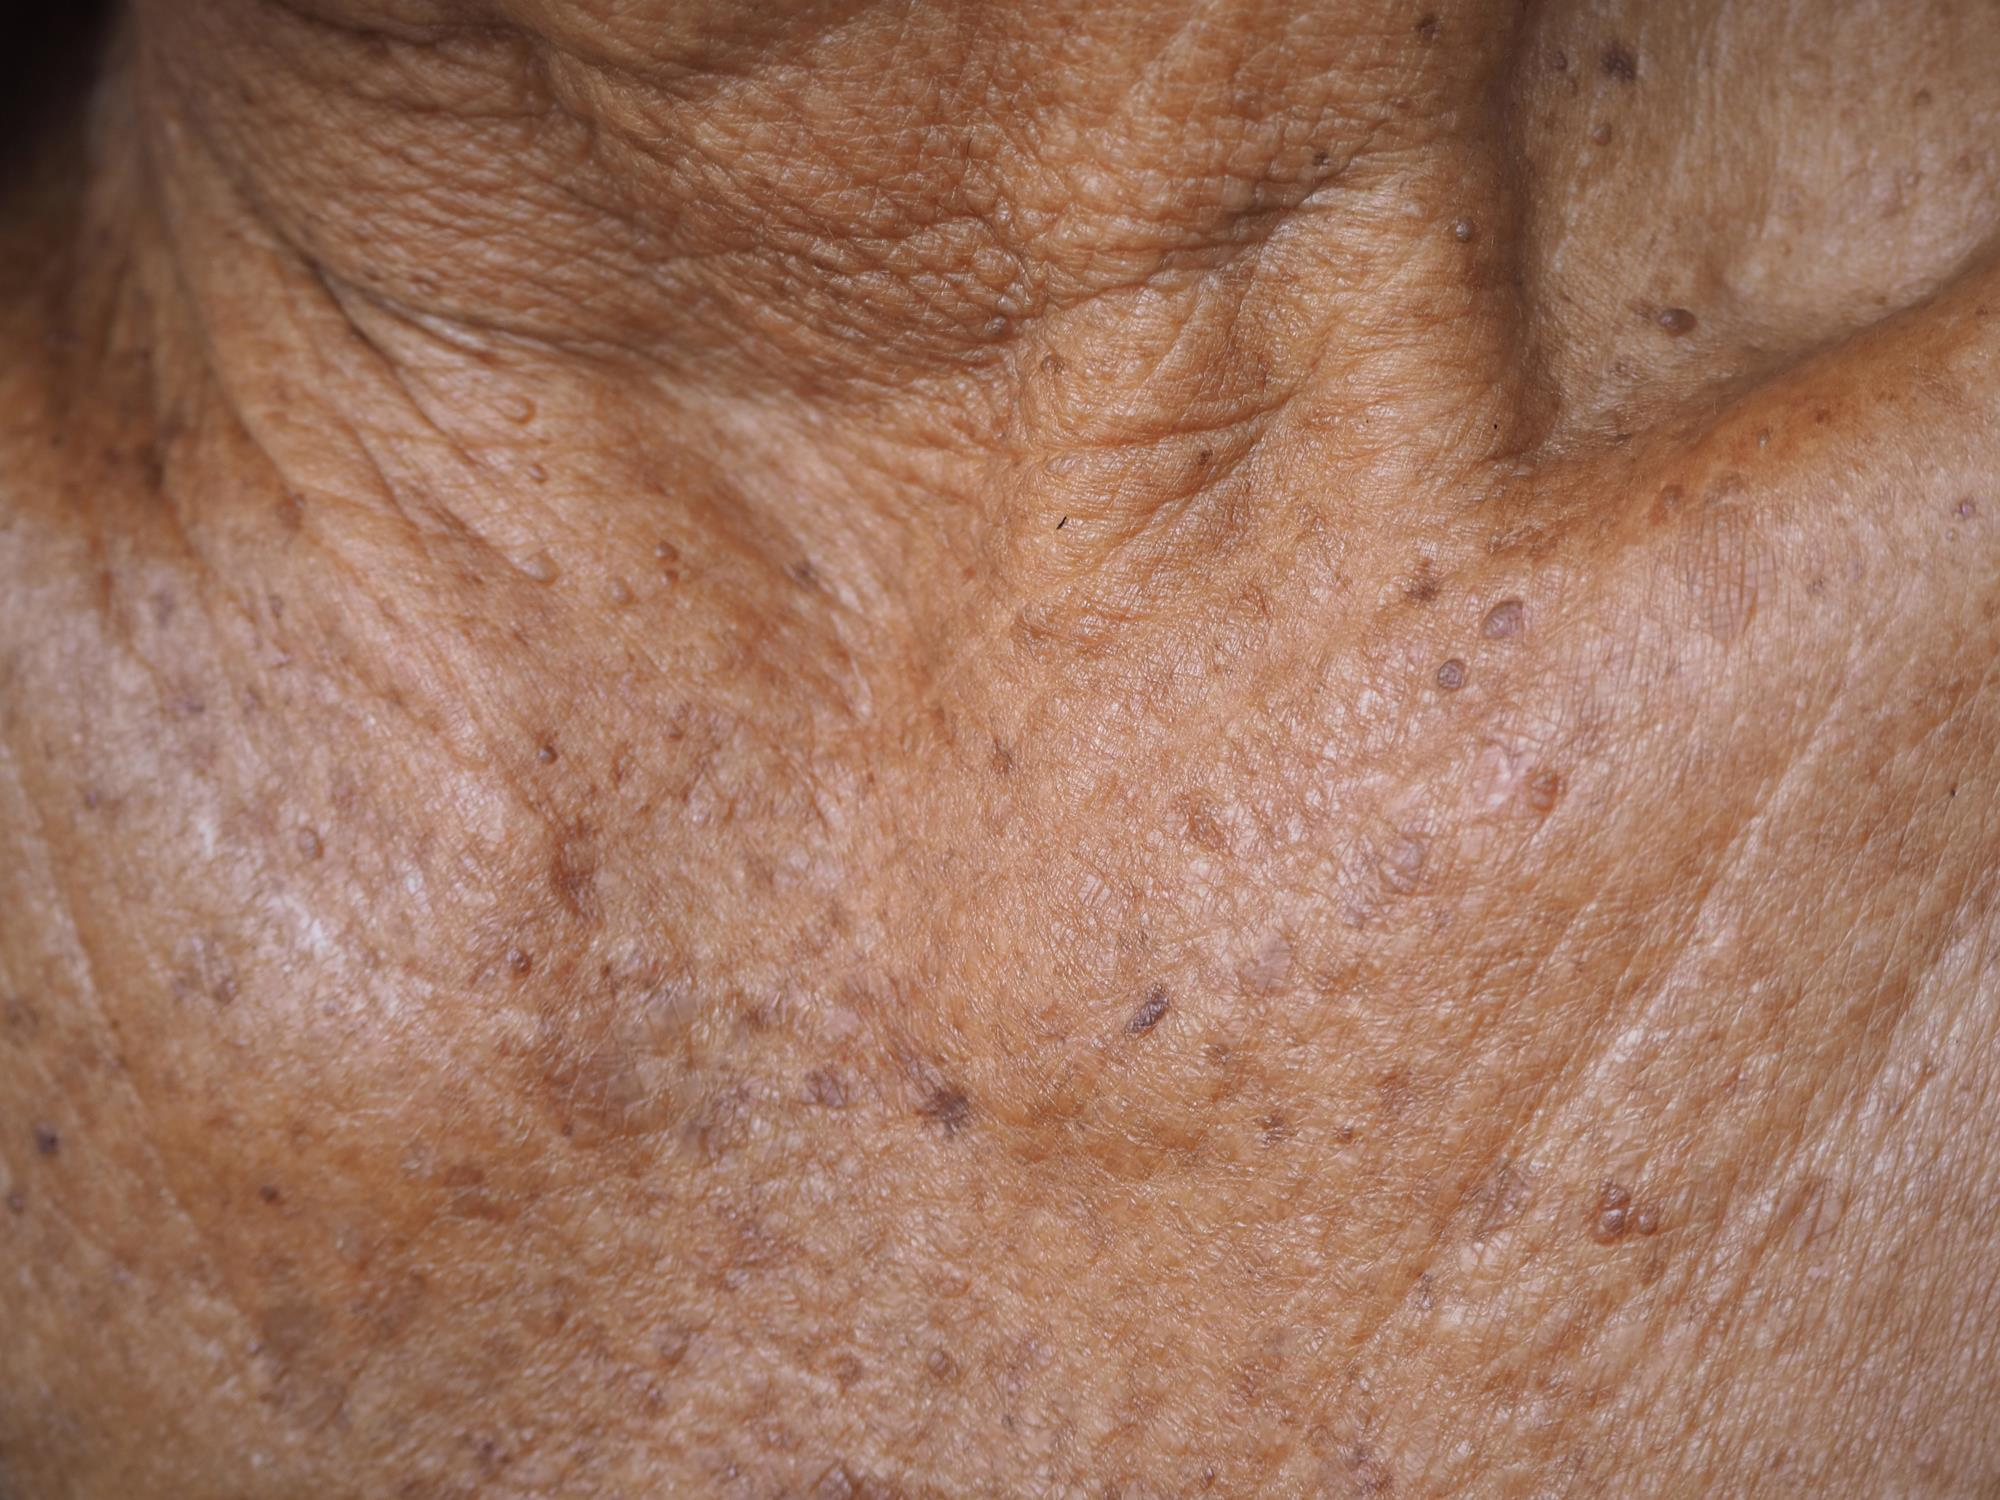 PCDS actinic keratosis guideline | Independent professional body guideline  | Guidelines